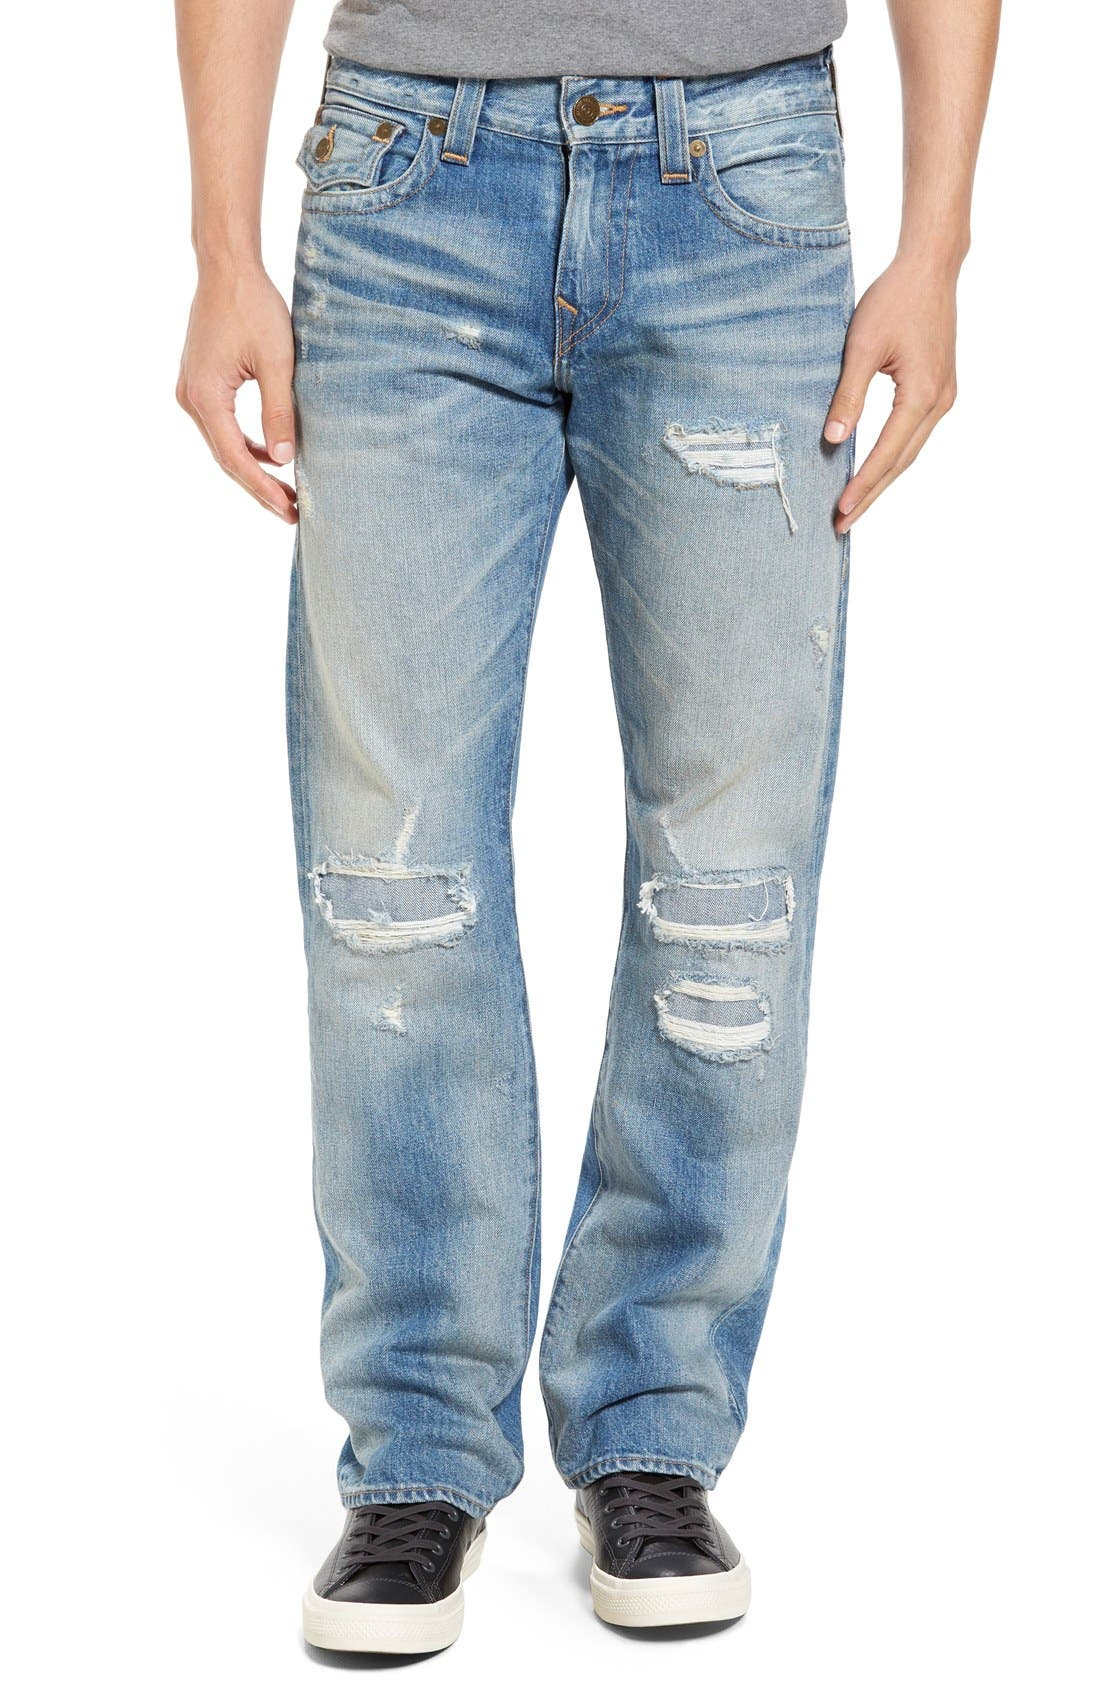 True Religion Brand Jeans Ricky Relaxed Fit Nordstrom ...